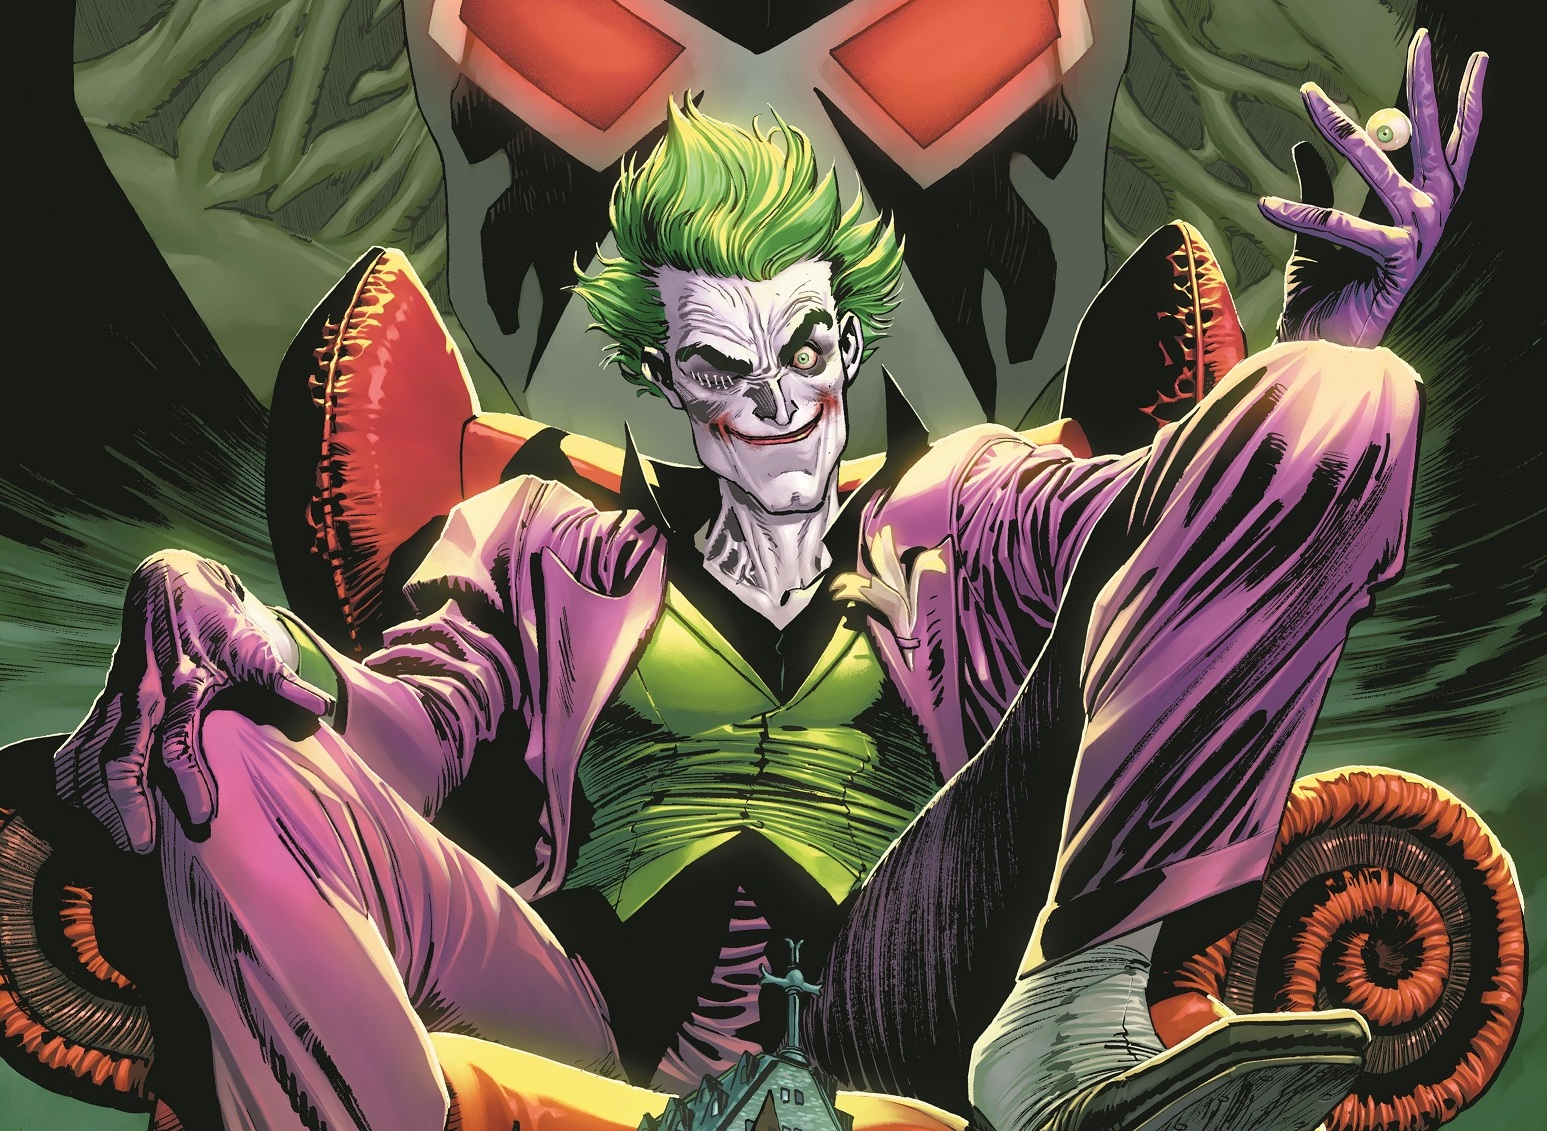 The Joker sprawls on a throne in a purple suit and green vest. His right eyelid is sewn shut. From the cover of The Joker #1, DC Comics (2021).